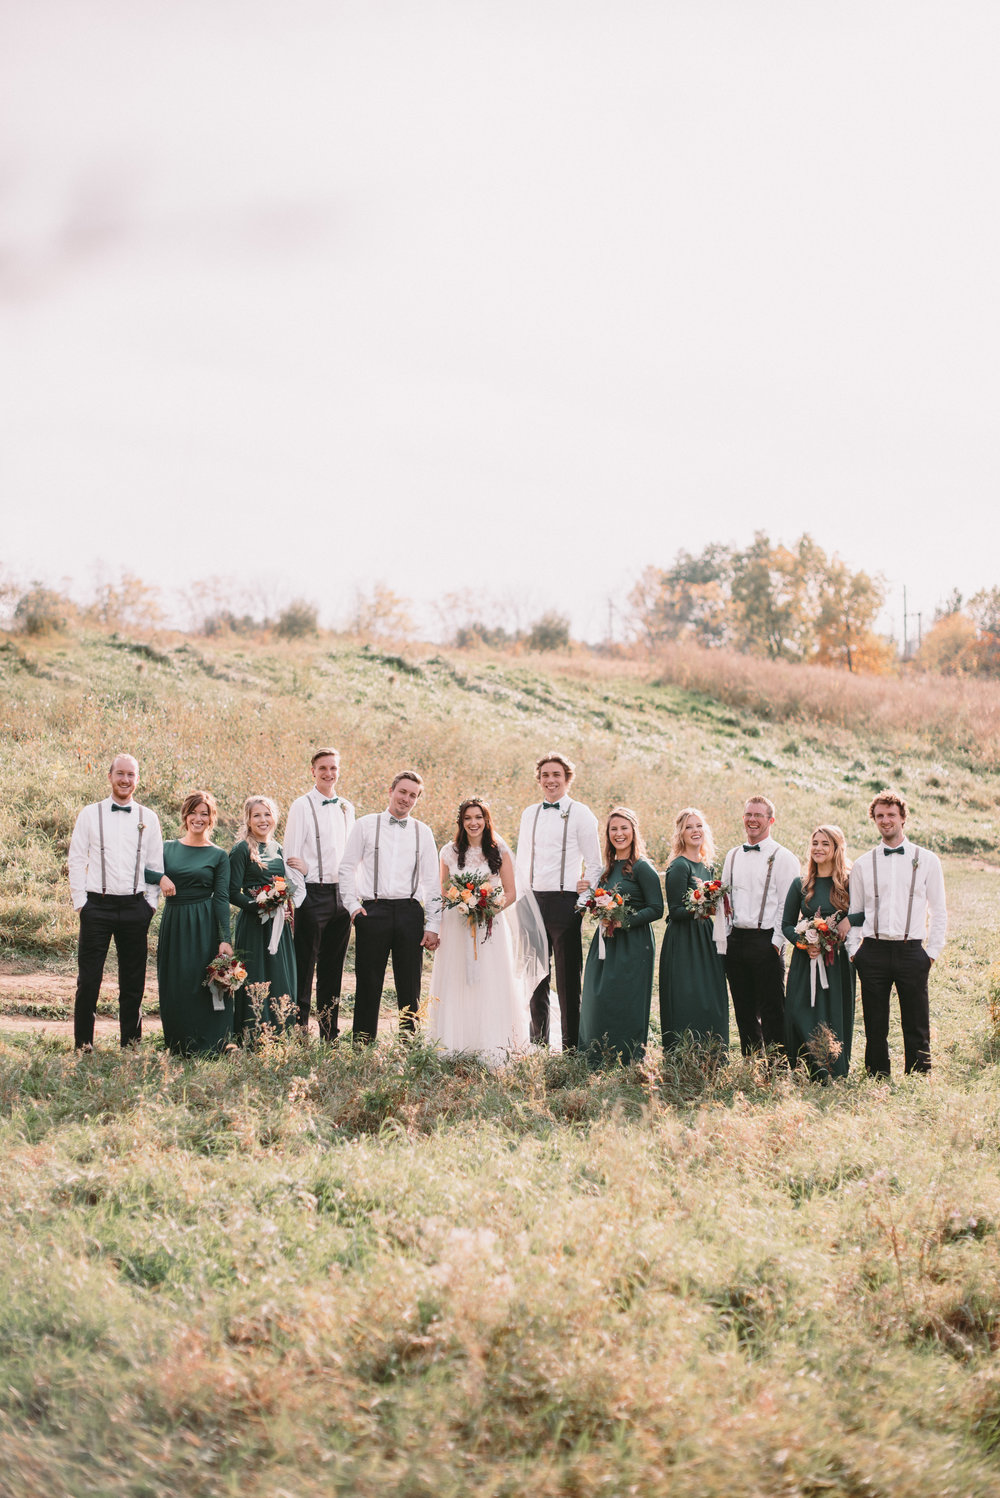 Macy+Reed{weddingstory}(629of1015).JPG